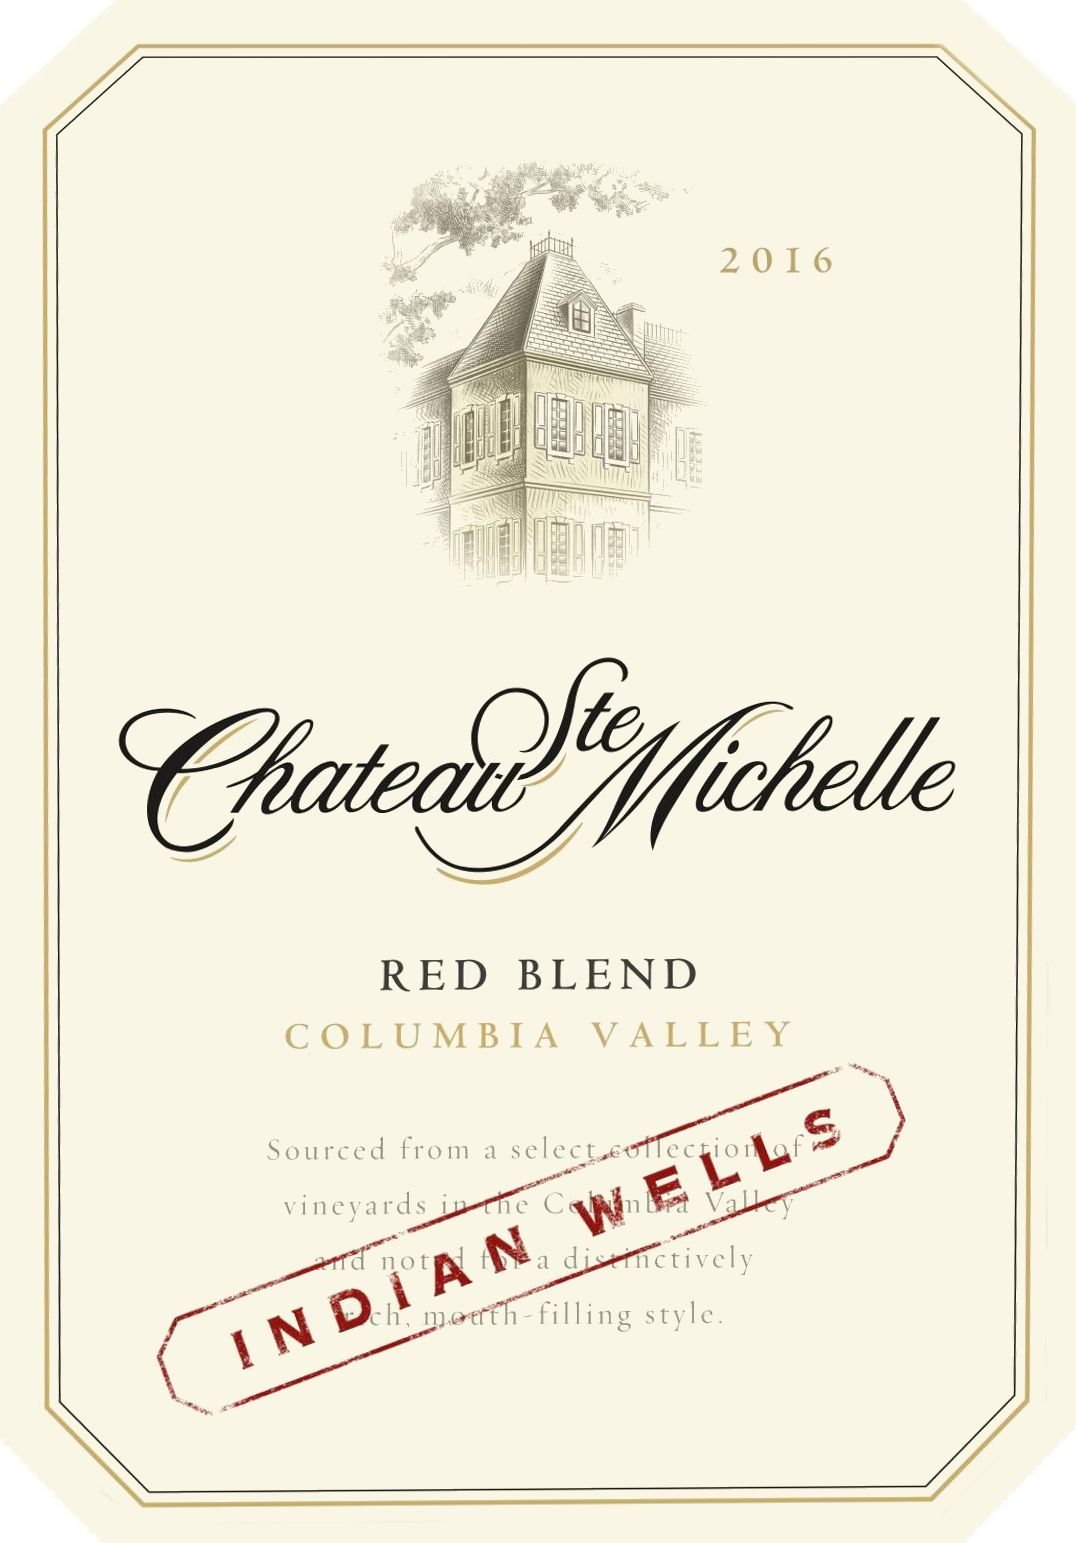 Chateau Ste. Michelle Indian Wells Red Blend 2016 Front Label